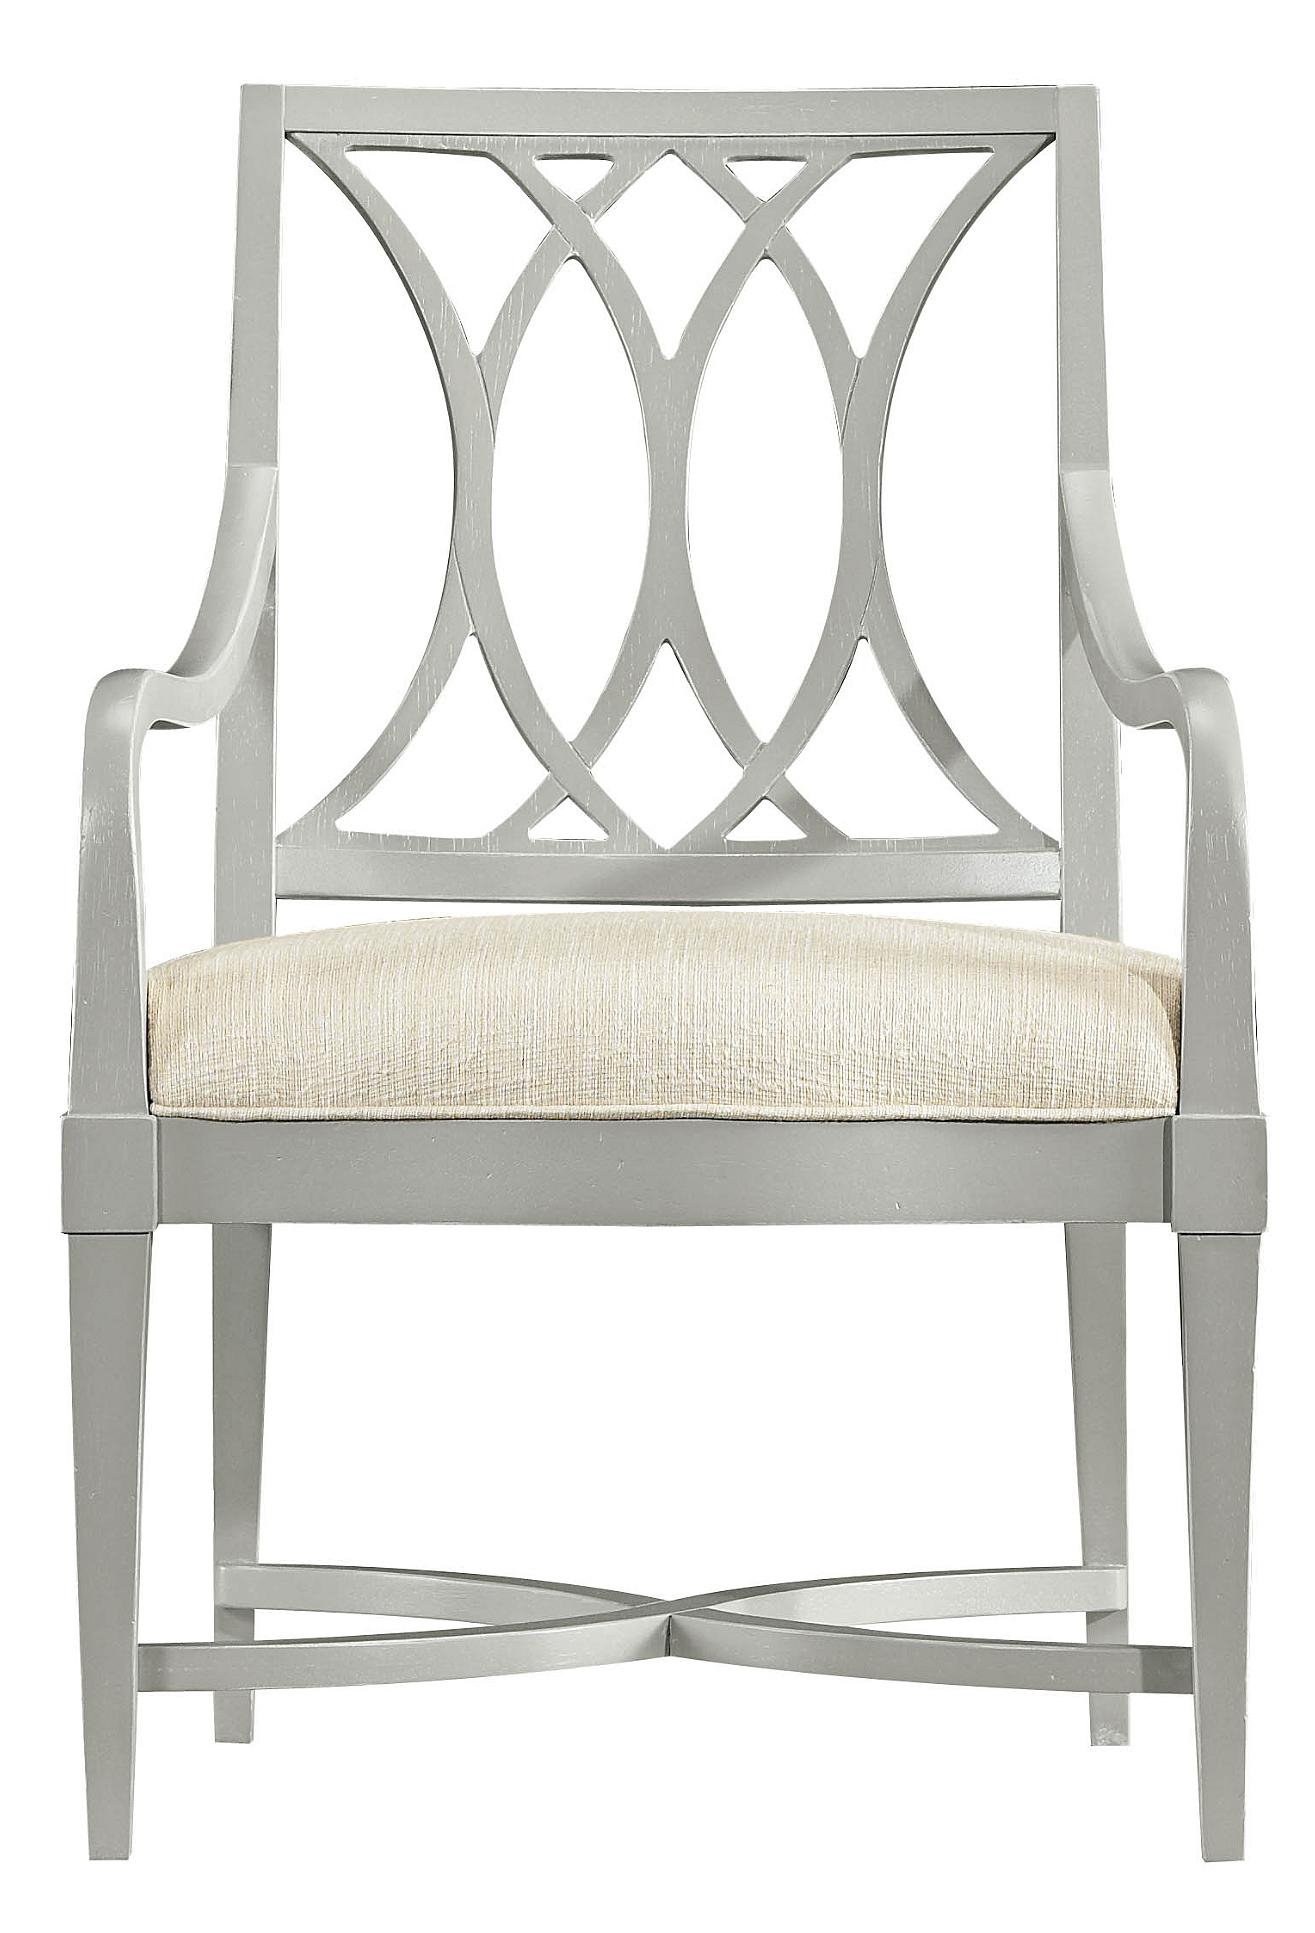 Stanley Furniture Coastal Living Resort Heritage Coast Arm Chair - Item Number: 062-C1-70